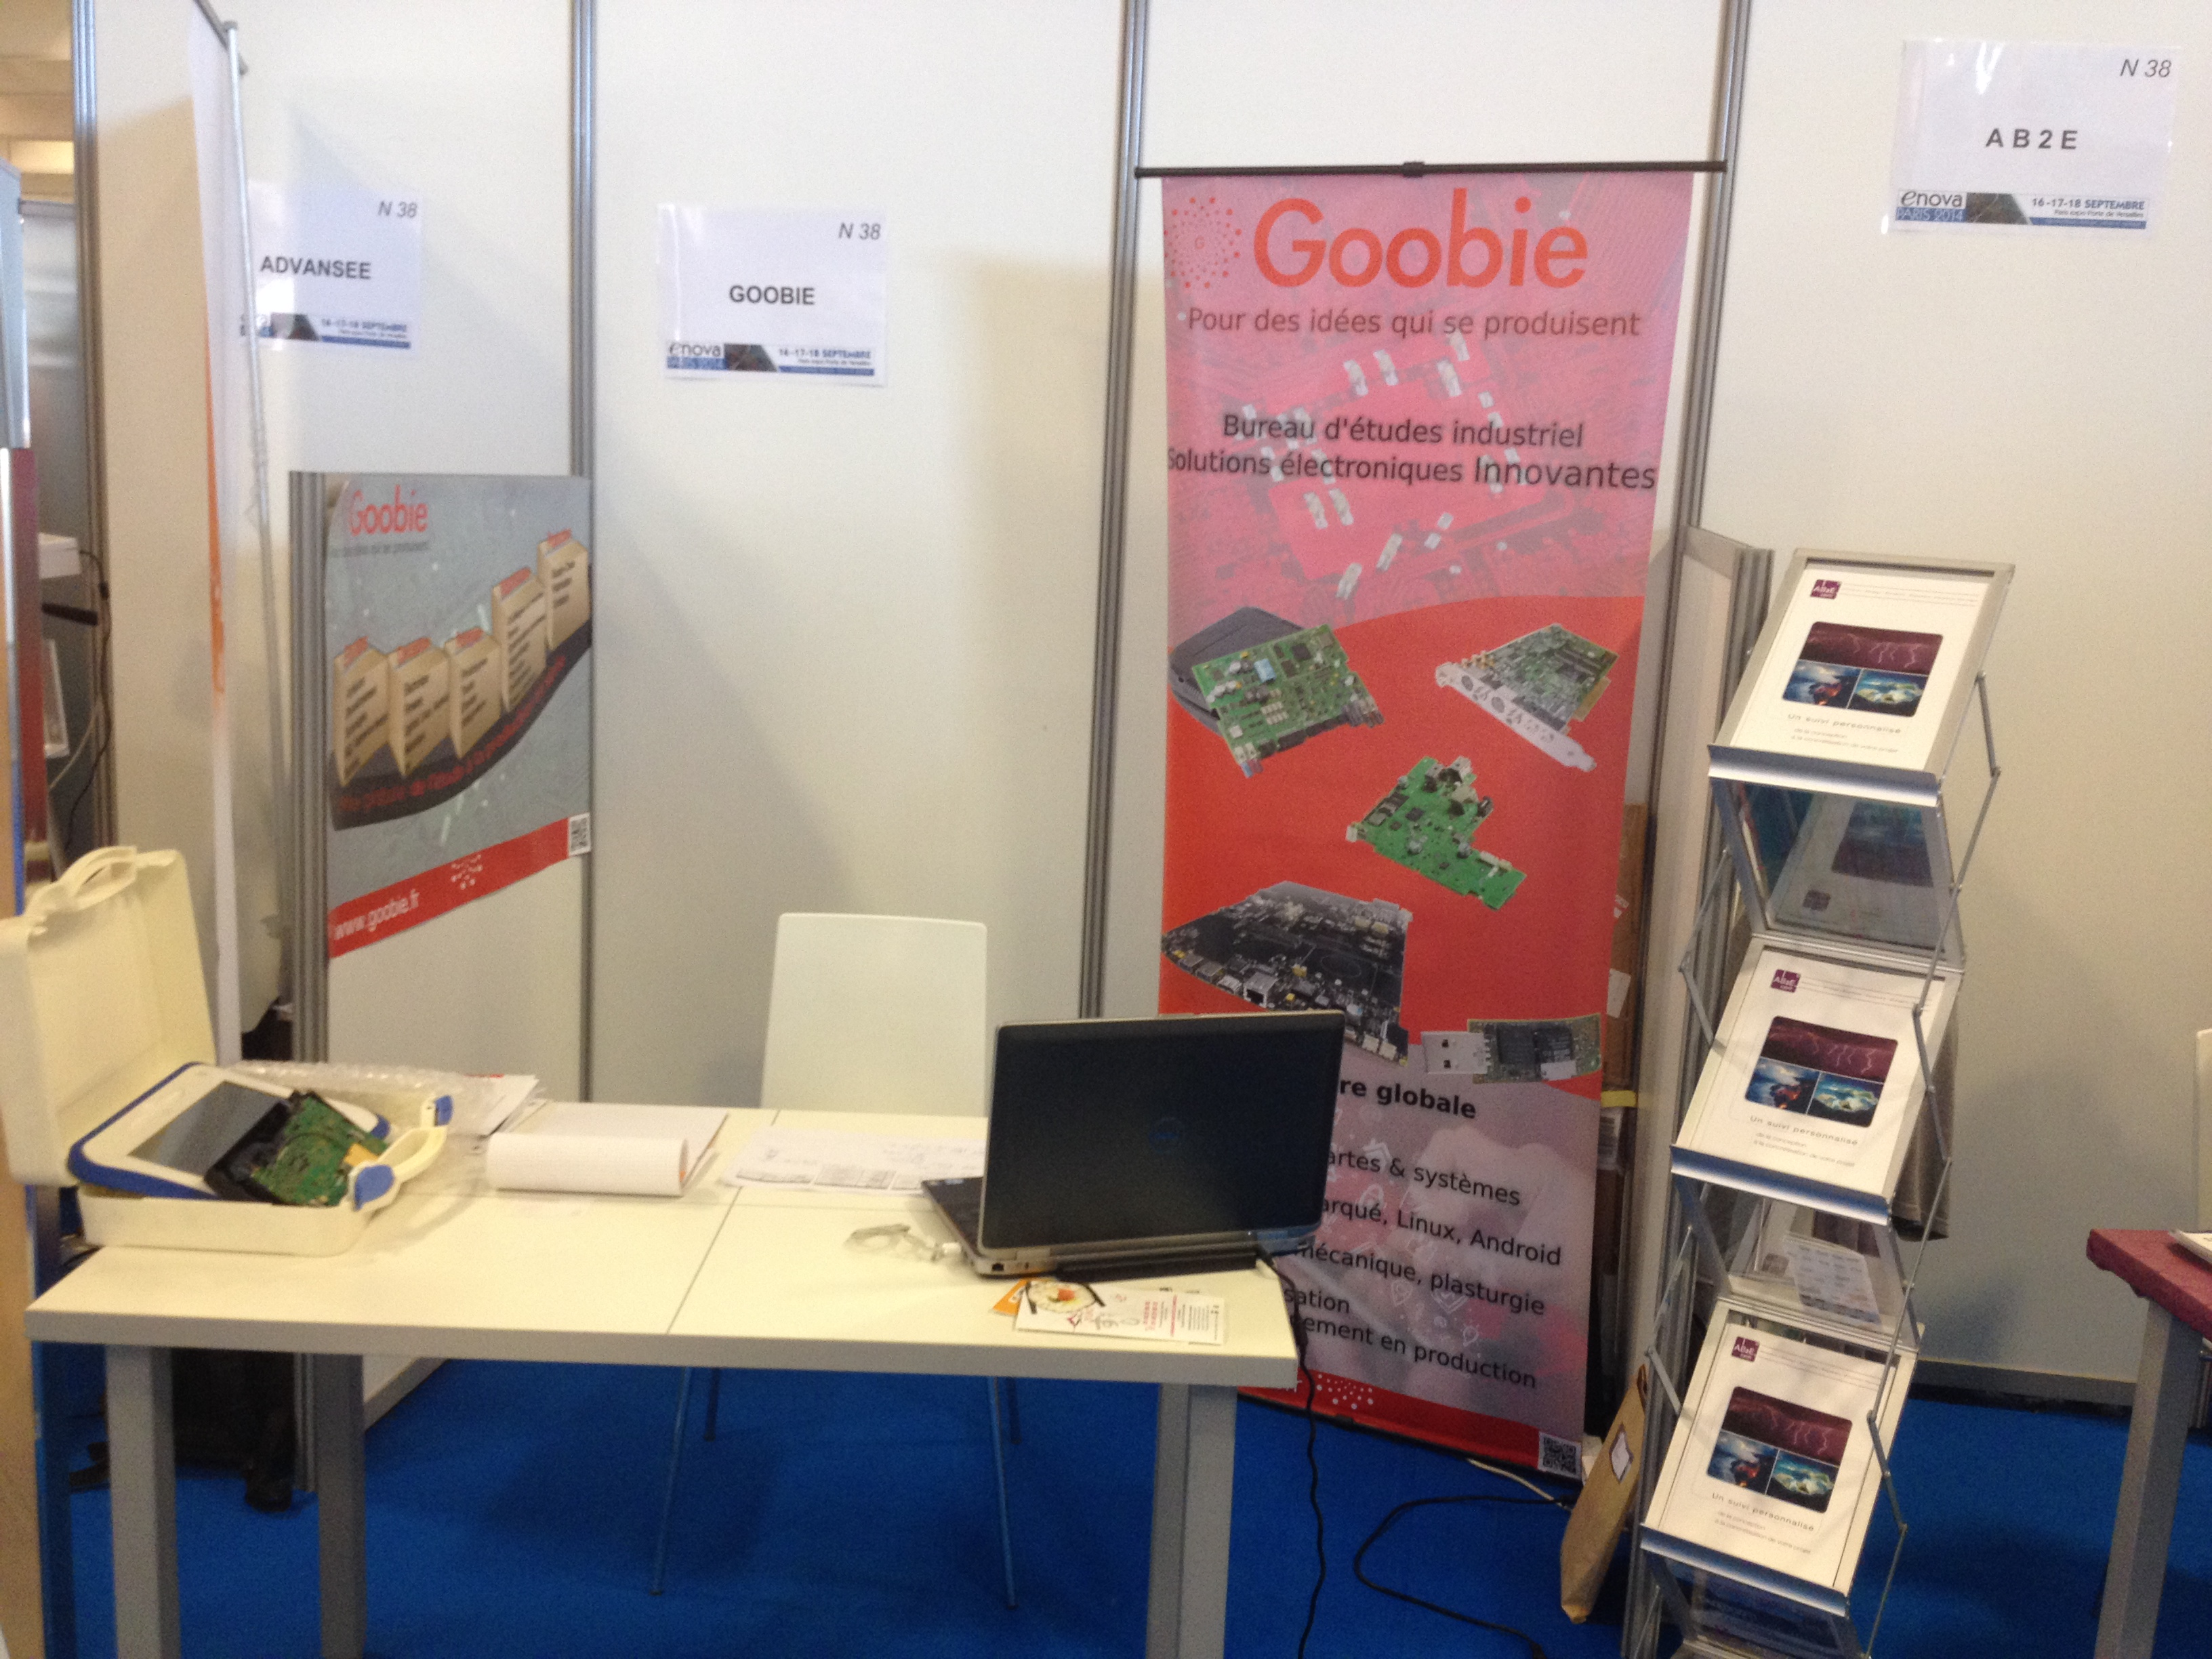 News goobie for Porte de versailles salon adresse